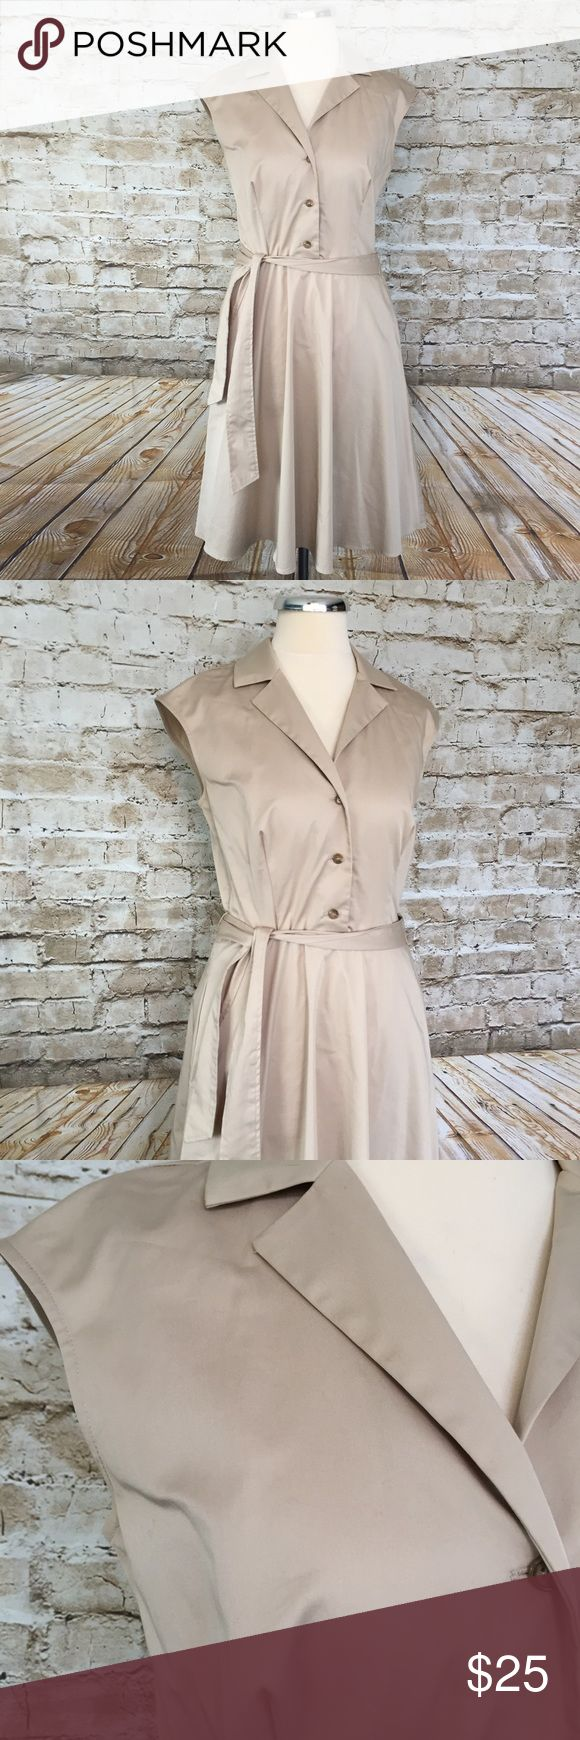 Ann Taylor Khaki Shirt Dress Sz 2 Gorgeous dress  Belted  Machine wash  Two front pockets   Measurements in inches when laid flat:  Bust: 16 Waist: 14 Hips: 18 Total length: 37.5 Length from under arm to hem: 28 Ann Taylor Dresses